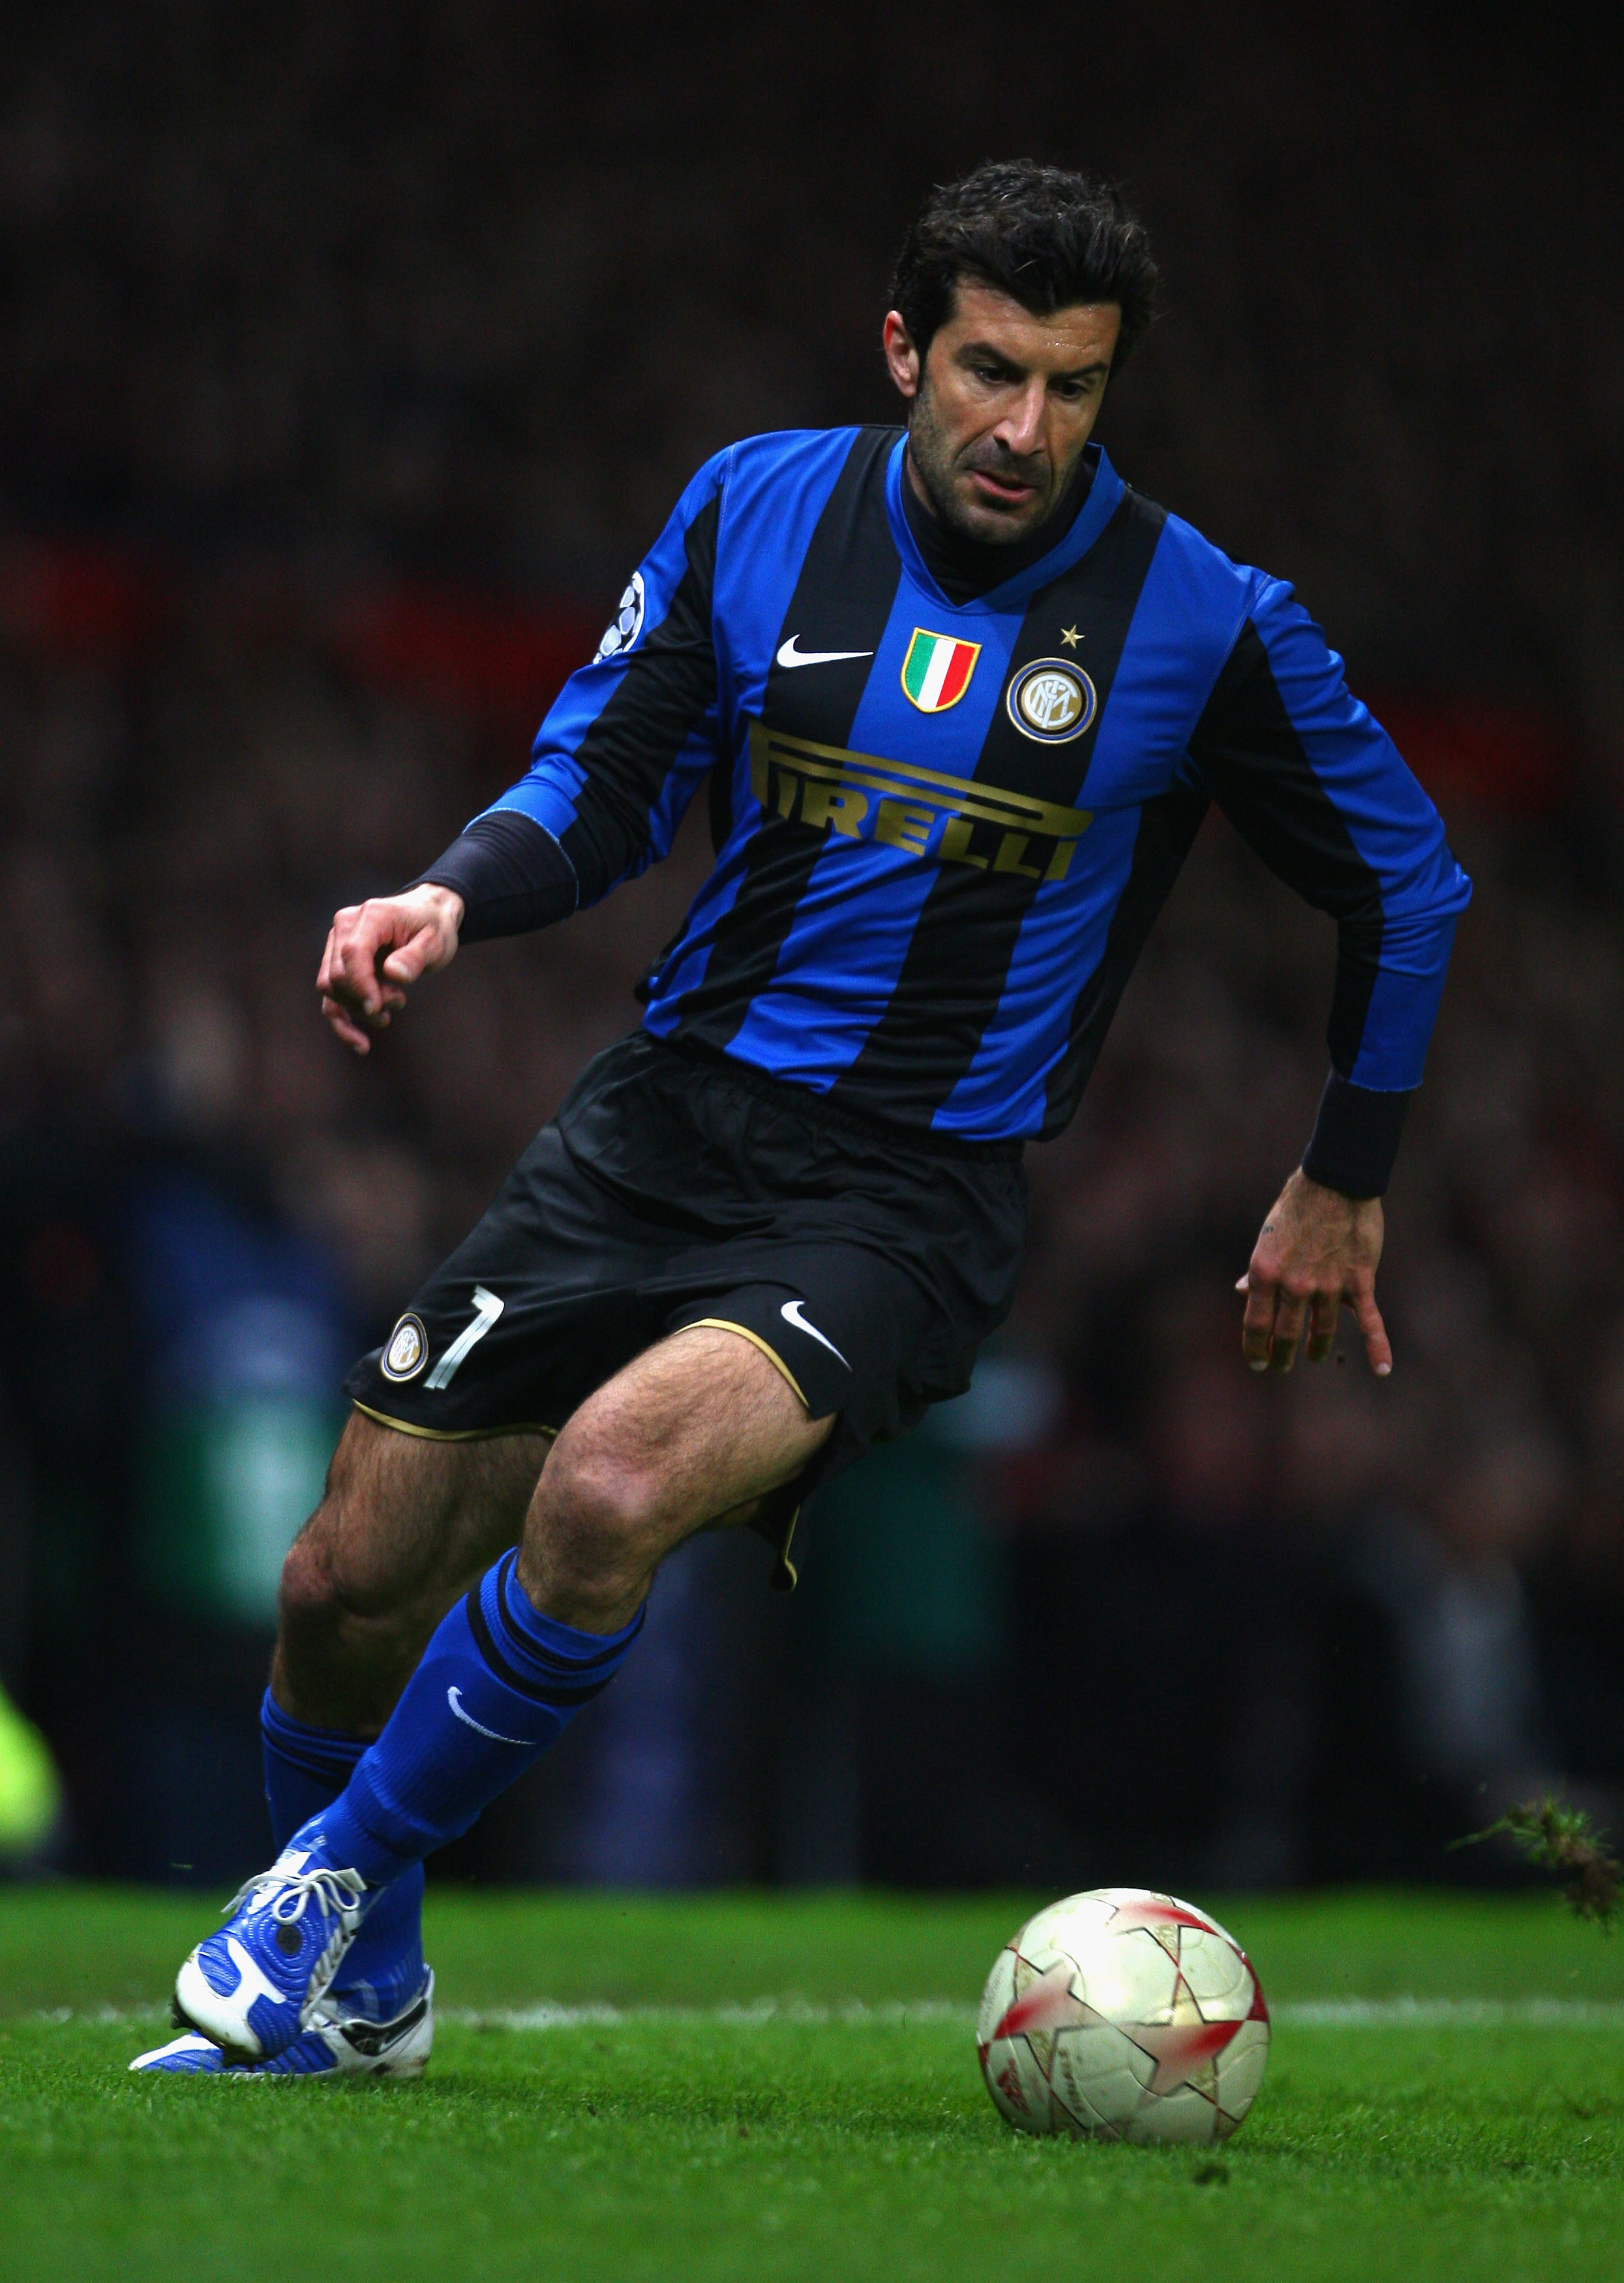 MANCHESTER, UNITED KINGDOM - MARCH 11:  Luis Figo of Inter Milan in action during the UEFA Champions League Round of Sixteen, Second Leg match between Manchester United and Inter Milan at Old Trafford on March 11, 2009 in Manchester, England. (Photo by La